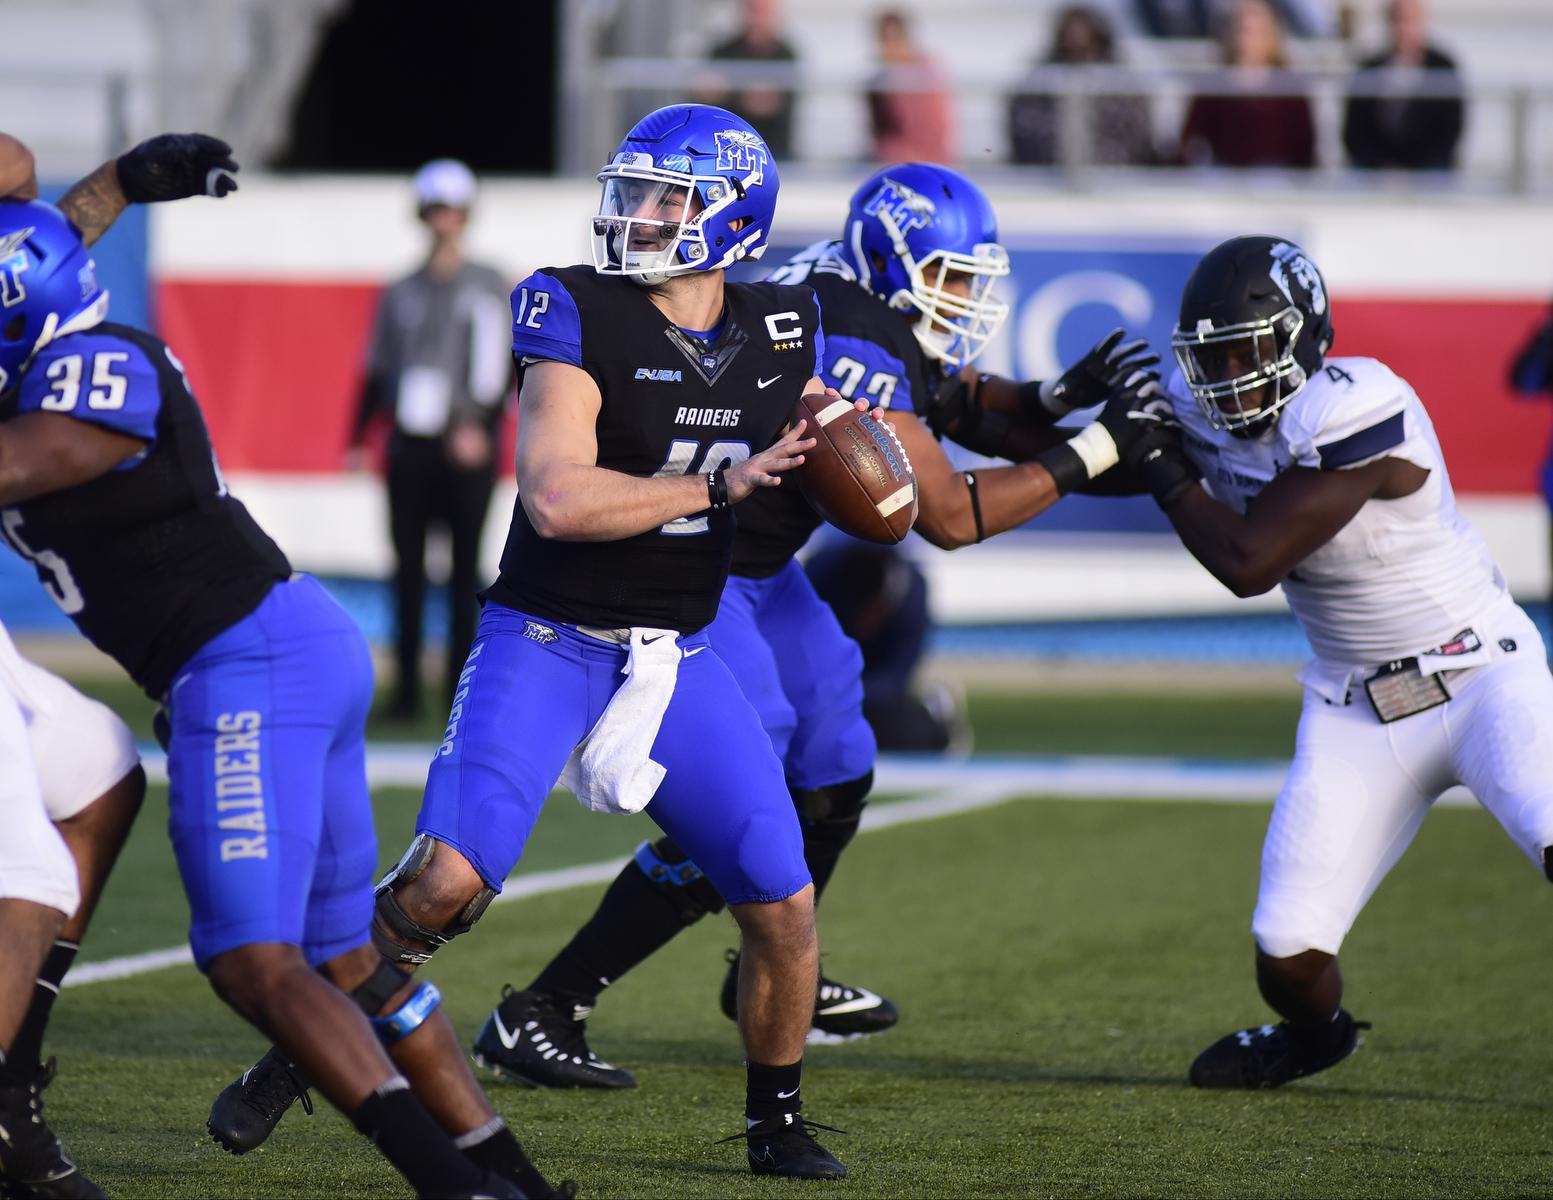 GameDay preview: Arkansas State vs. Middle Tennessee